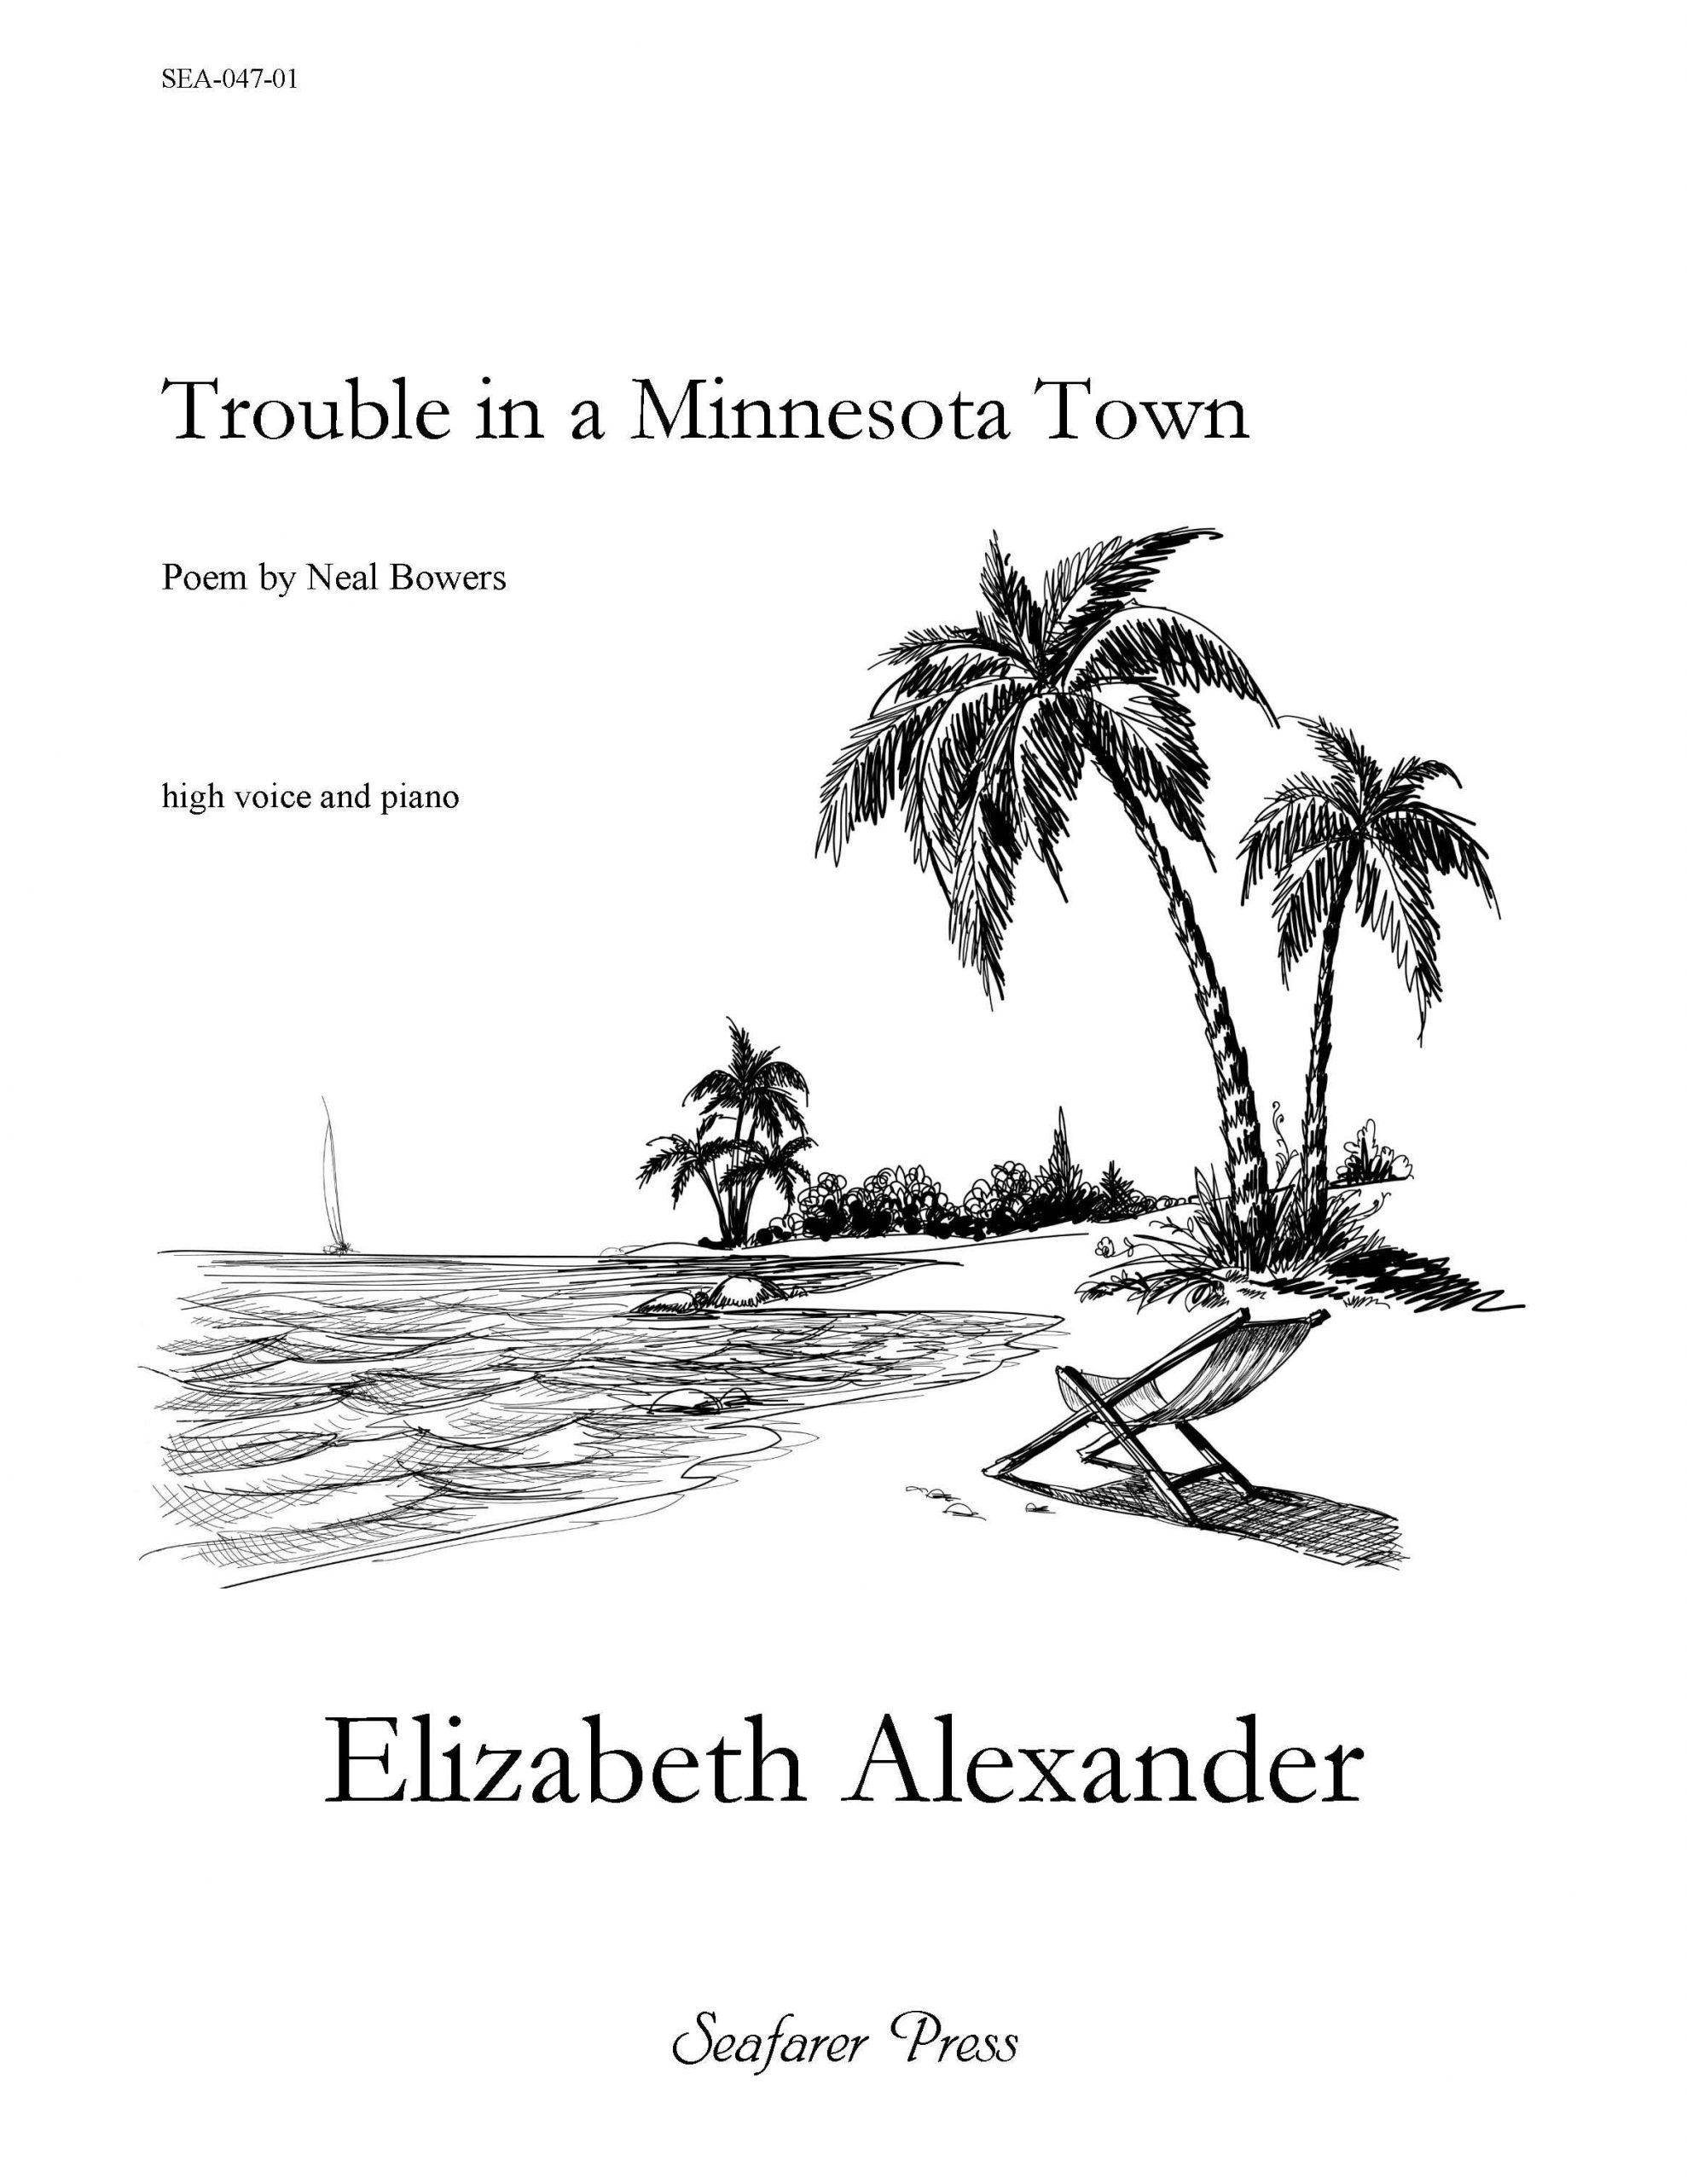 SEA-047-01 - Trouble in a Minnesota Town